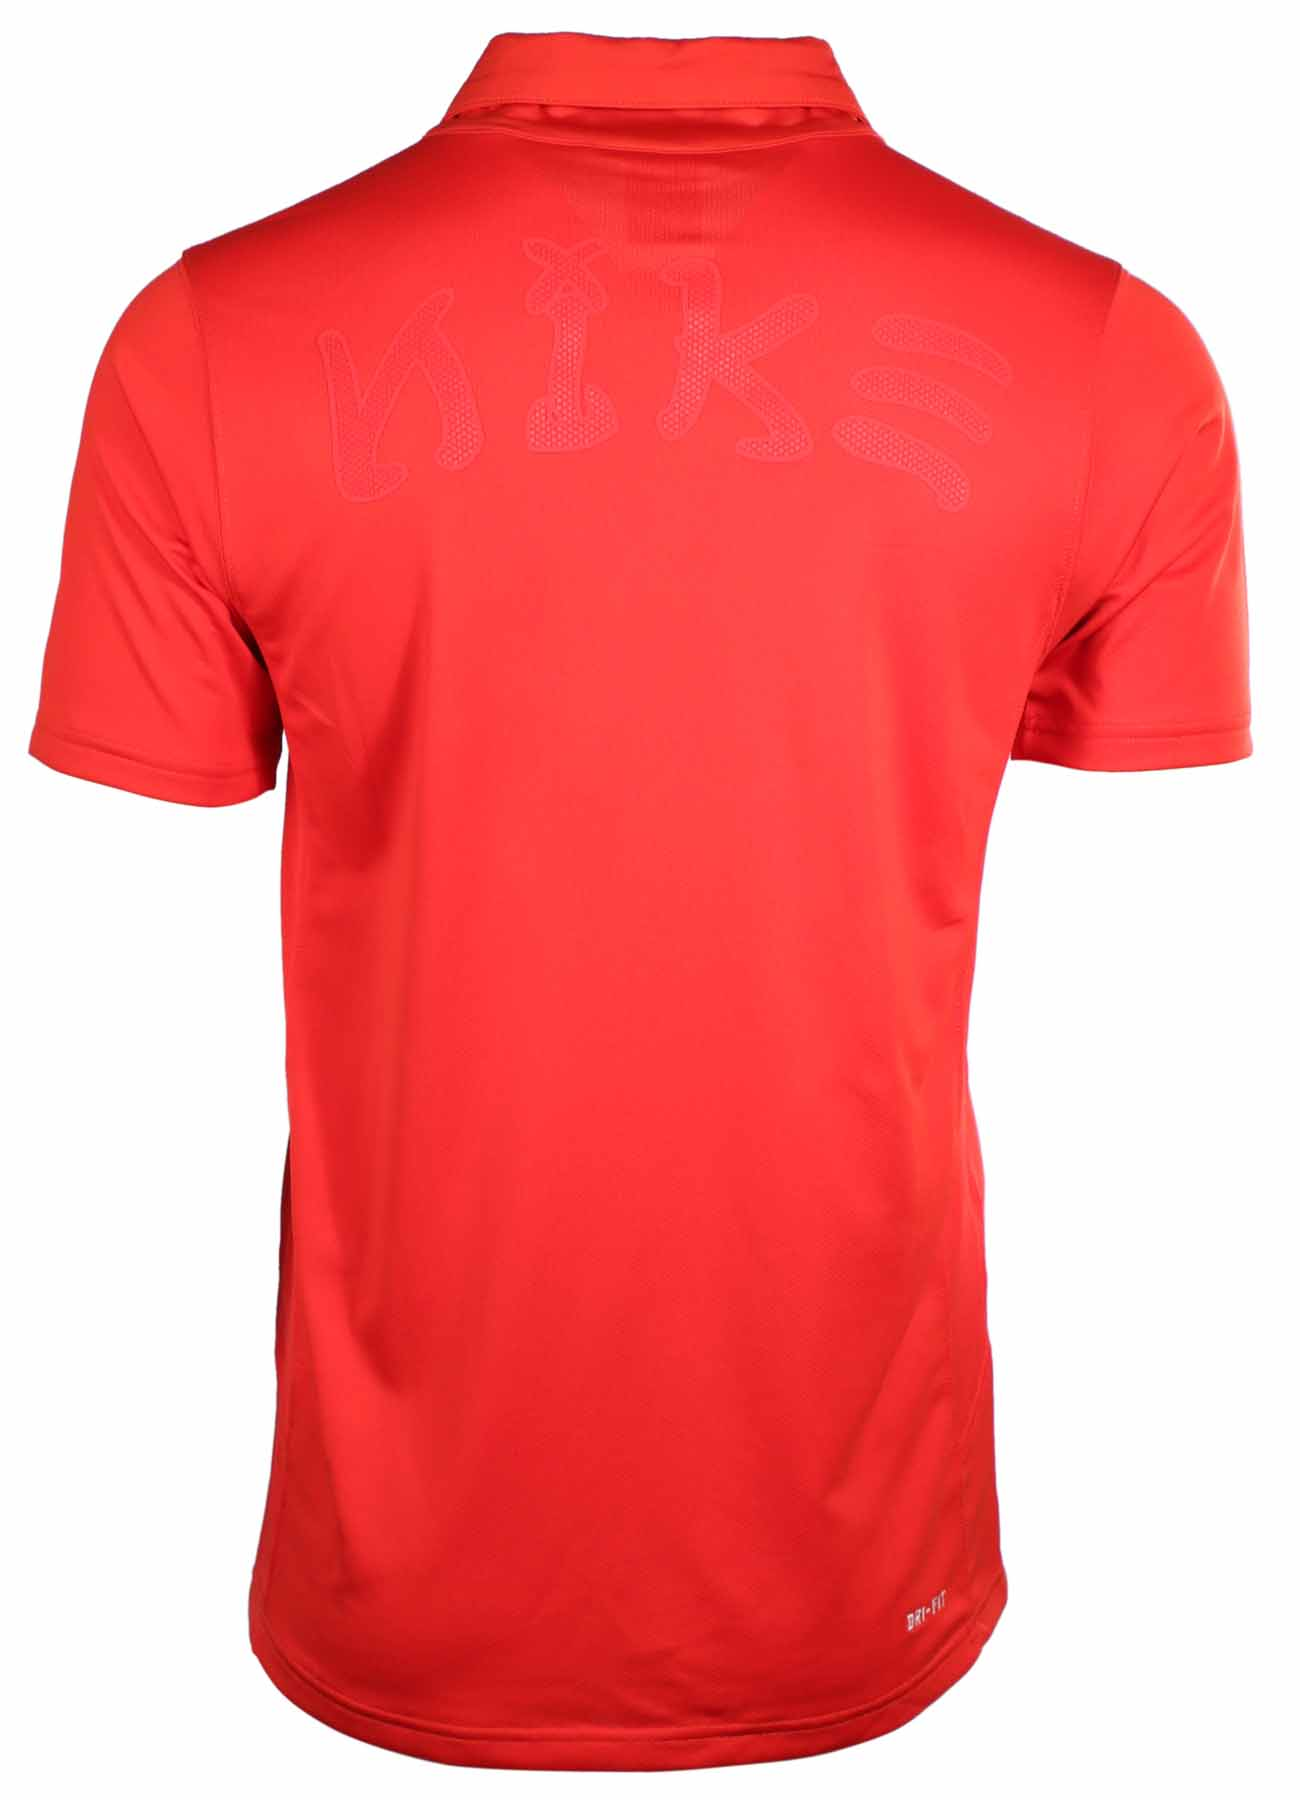 Nike men 39 s dri fit sb jersey skateboarding collar shirt for Dri fit collar shirts